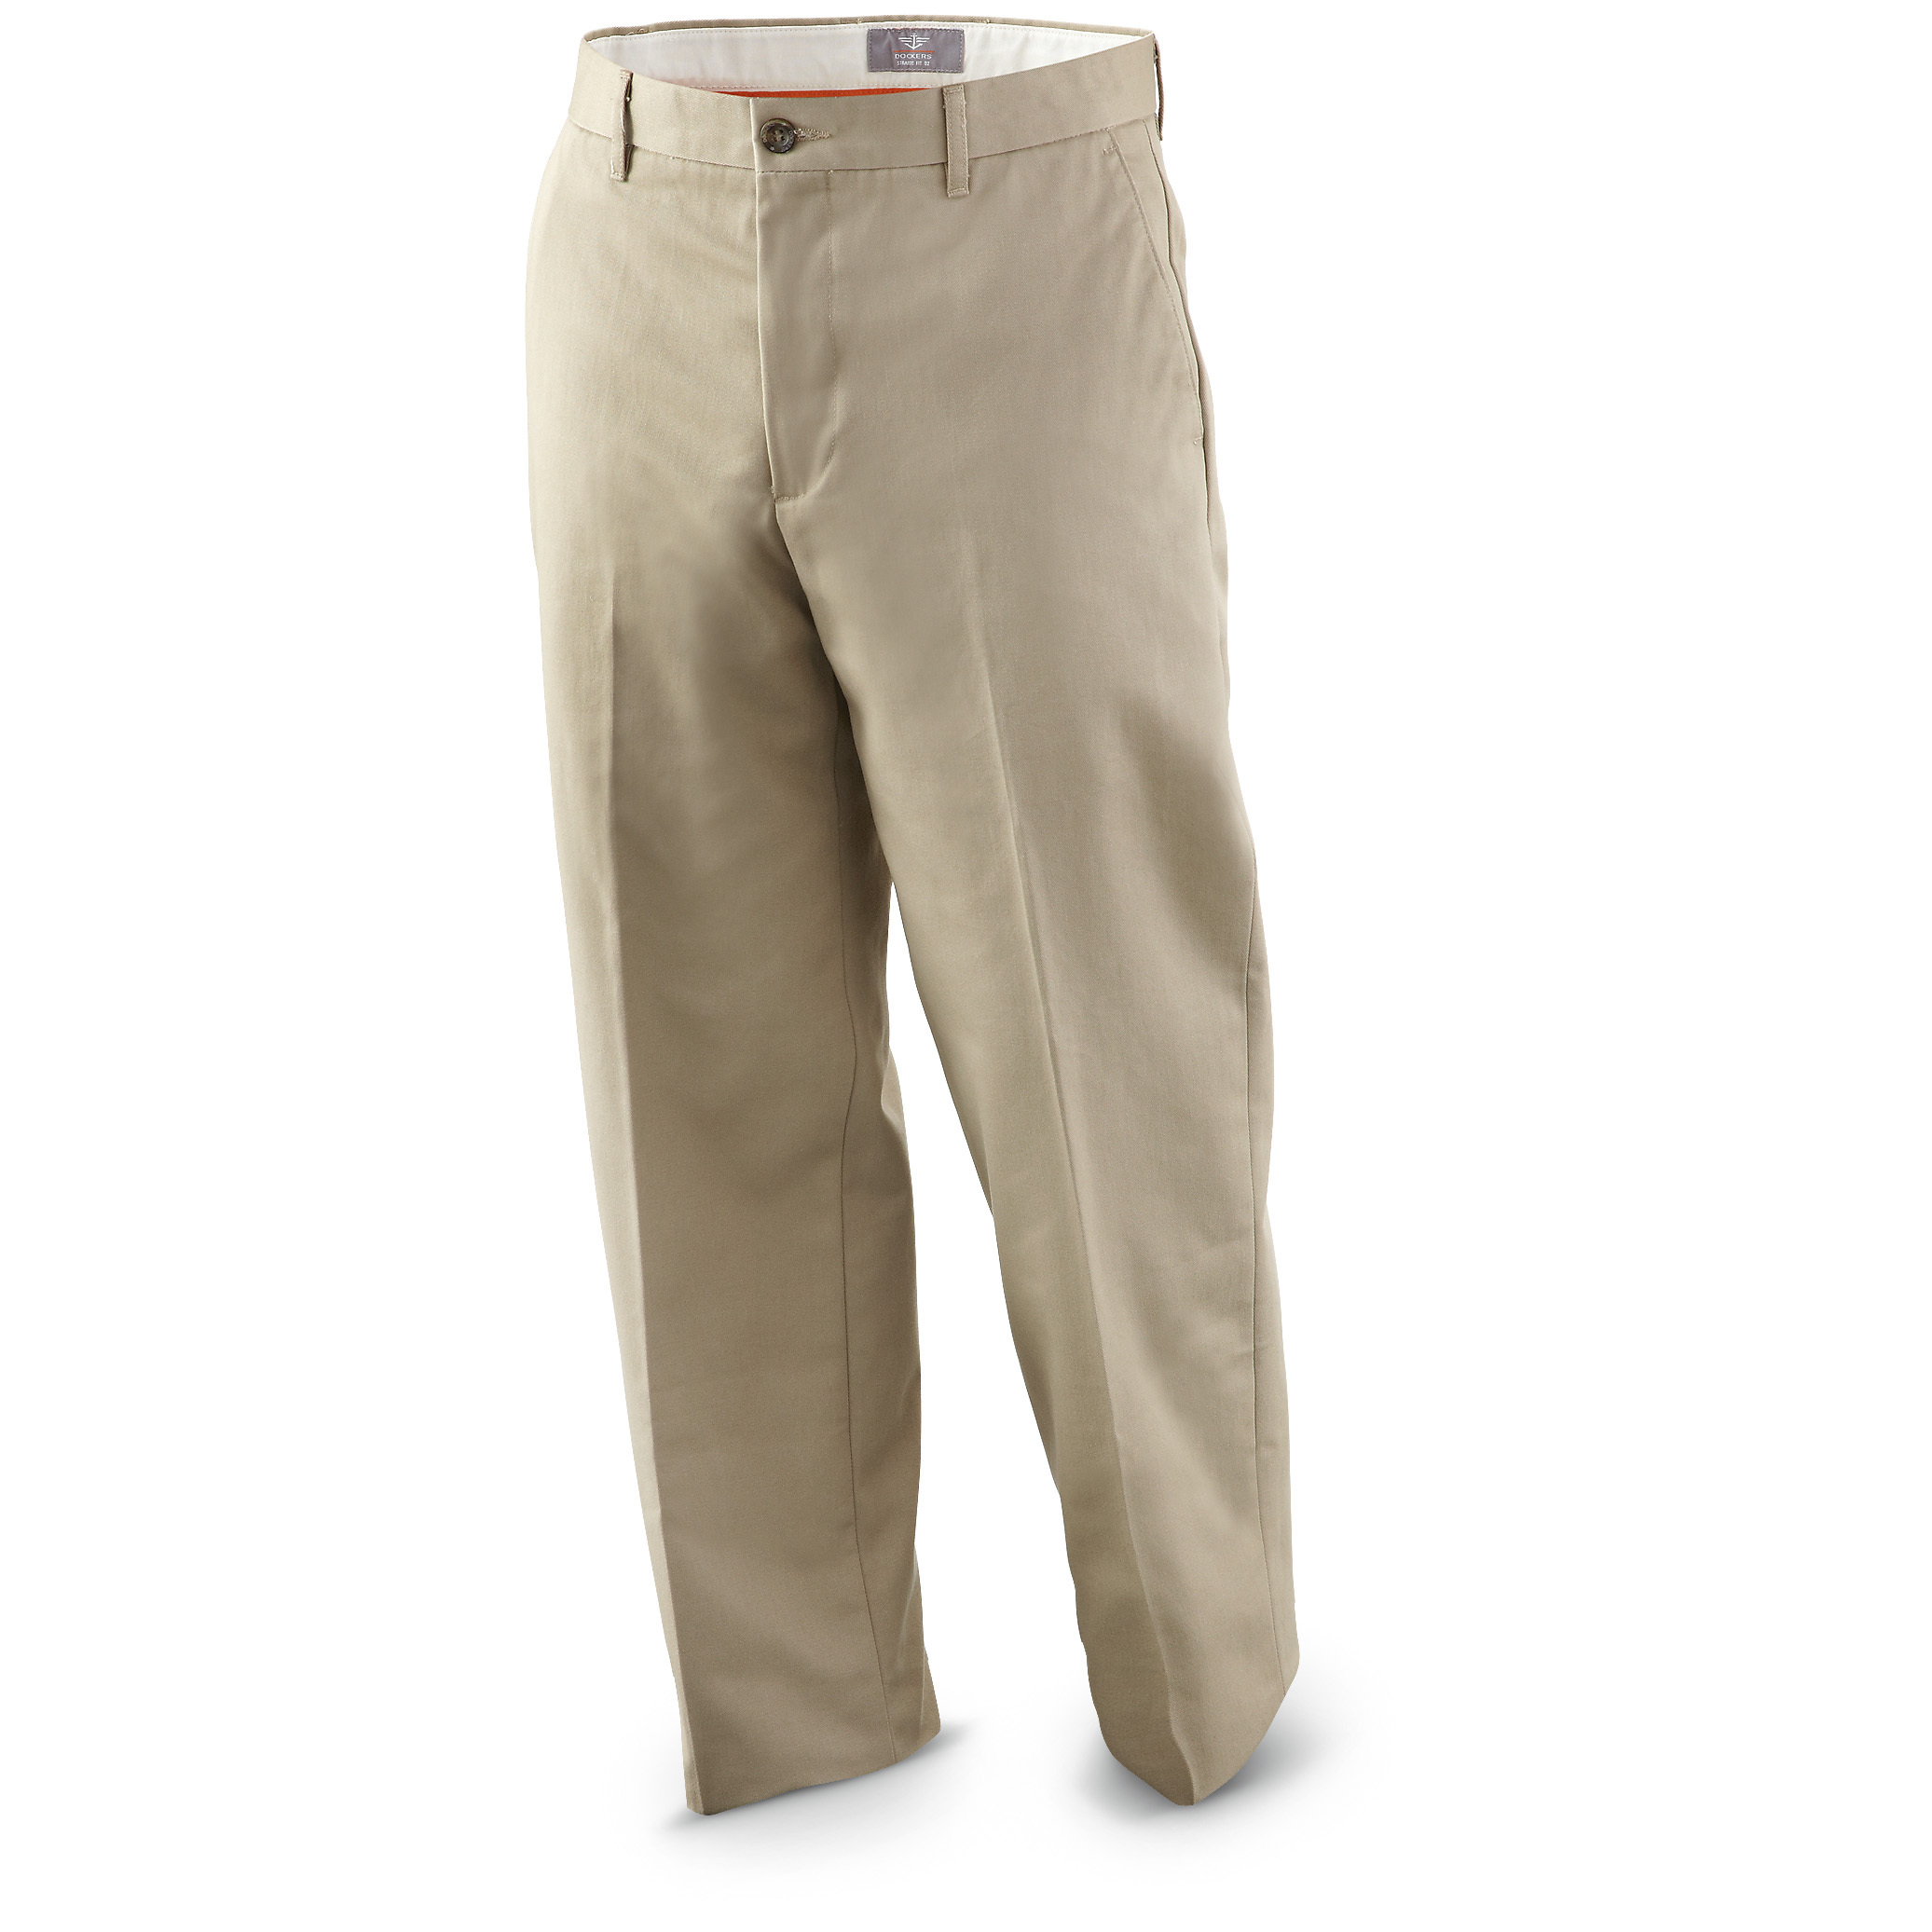 "Dockers Classic Easy-fit Pants... comfortable with a modern look, with big savings! BIG BUCKS OFF! Look-good, feel-good Khakis. These comfortable 100% cotton Pants have an easy-fit style, giving you just enough room without looking baggy. With a straight-leg cut and flat front, you get a modern look perfect for the office or church Sundays. And though some scrupulous quality-control person labeled these Pants as ""irregular"", they look fine to us, so we pass the savings on to you, satisfaction guaranteed! Double button / zip front. 4 pockets plus coin pocket. Machine wash / dry.State Inseam and Waist Size, as available in the Shopping Cart. - $9.99"